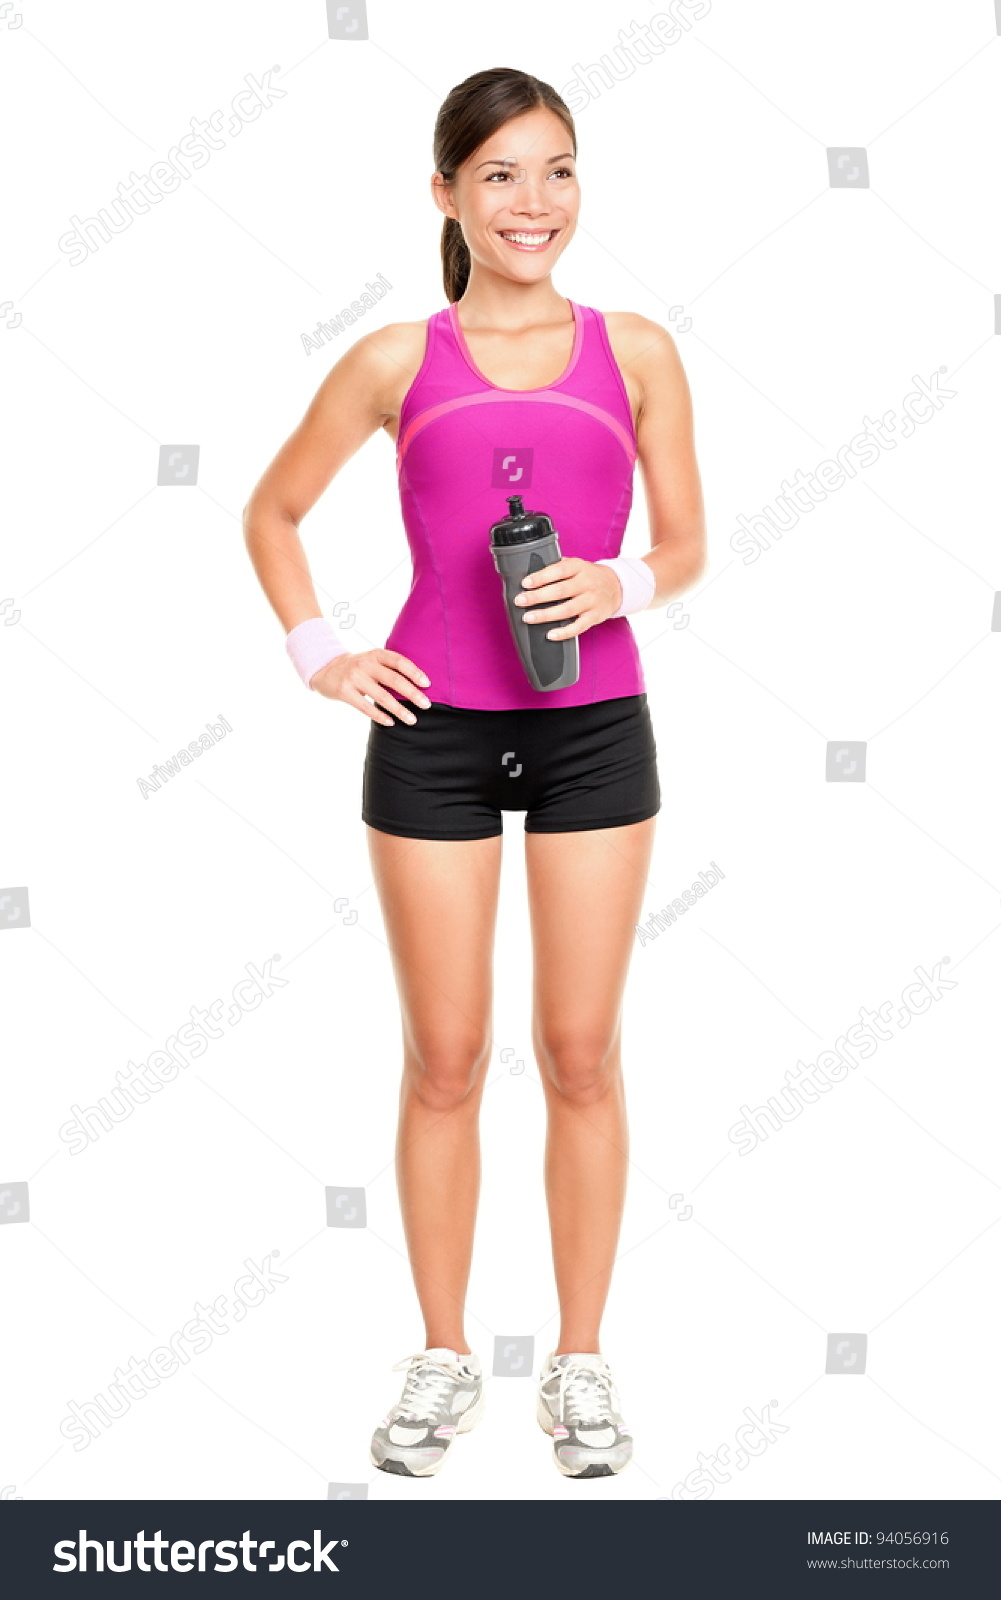 how to become a fitness clothing model canada